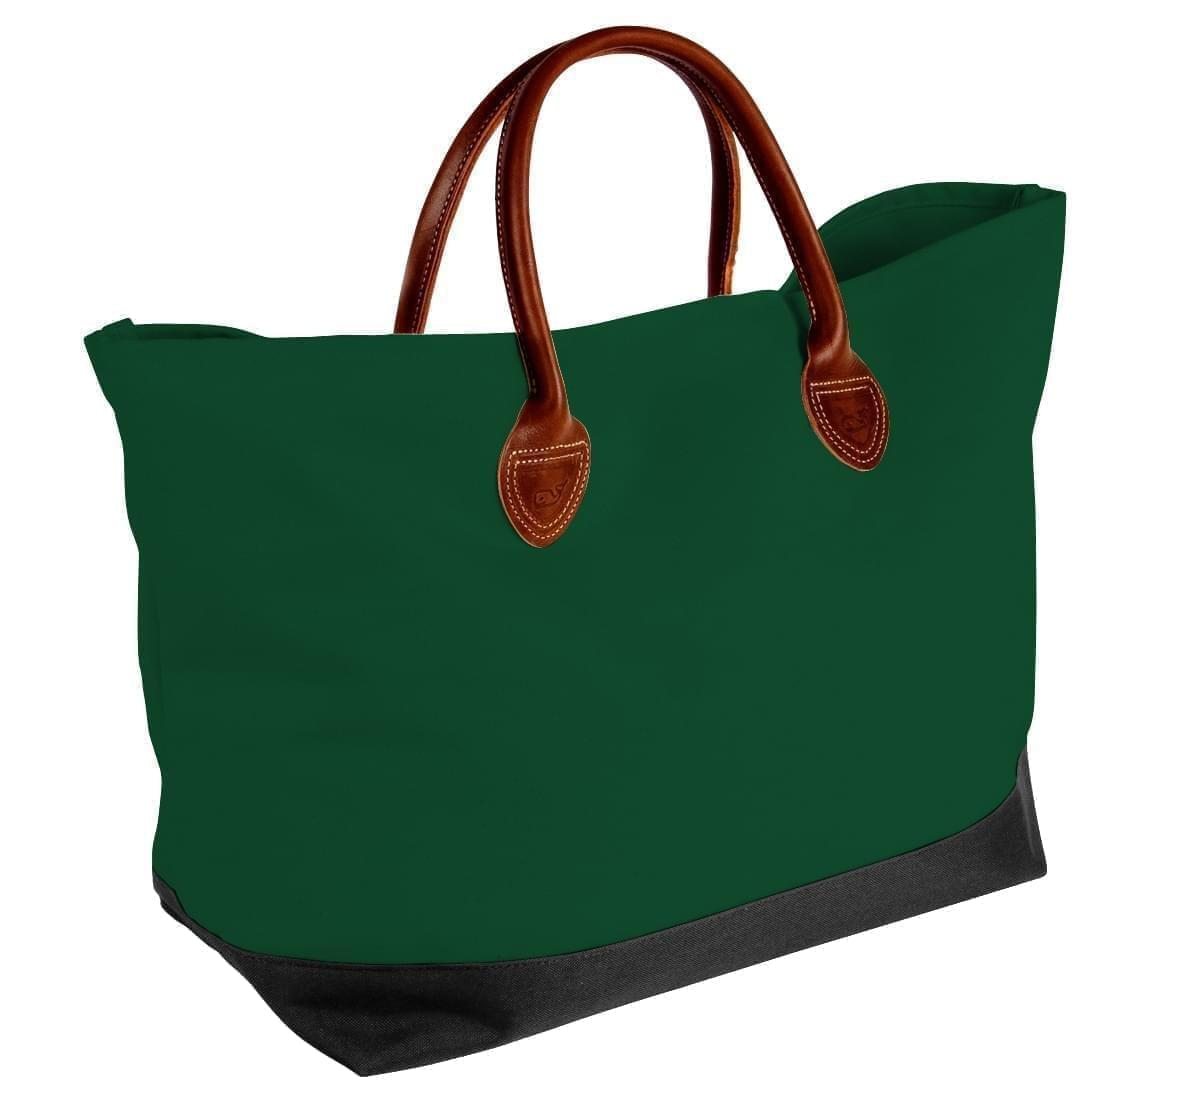 USA Made Canvas Leather Handle Totes, Hunter Green-Black, 10899-CI9